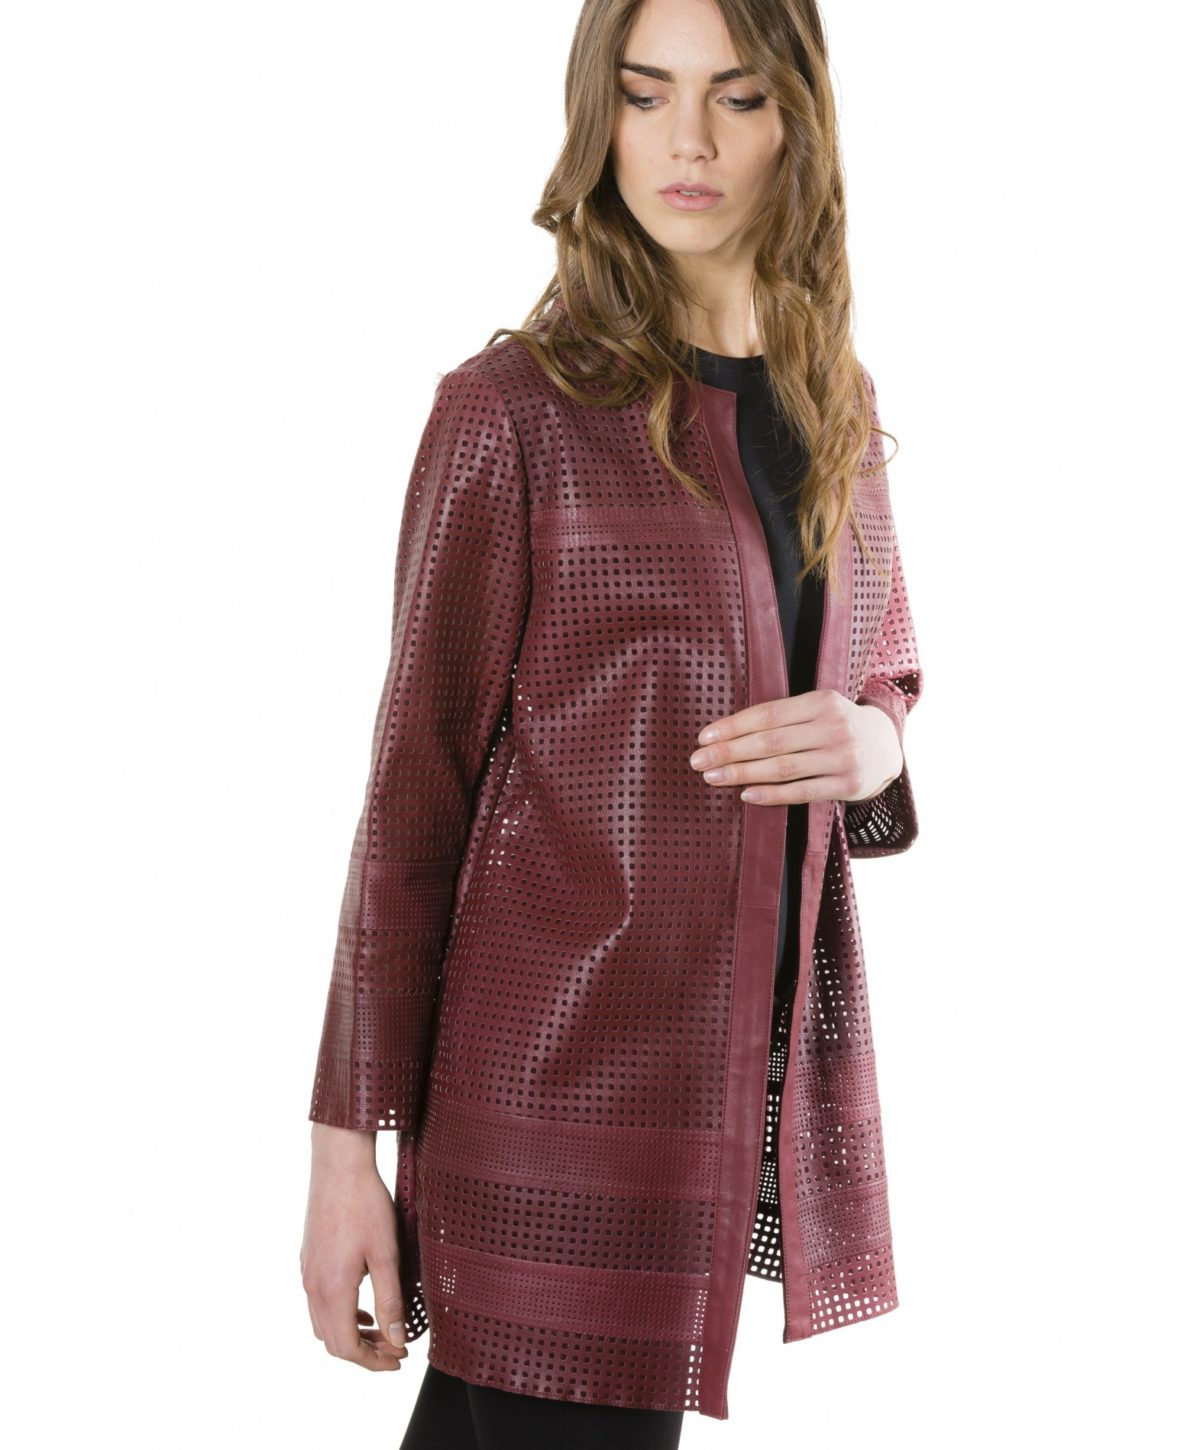 madox-bordeaux-color-lamb-lasered-leather-jacket (2)